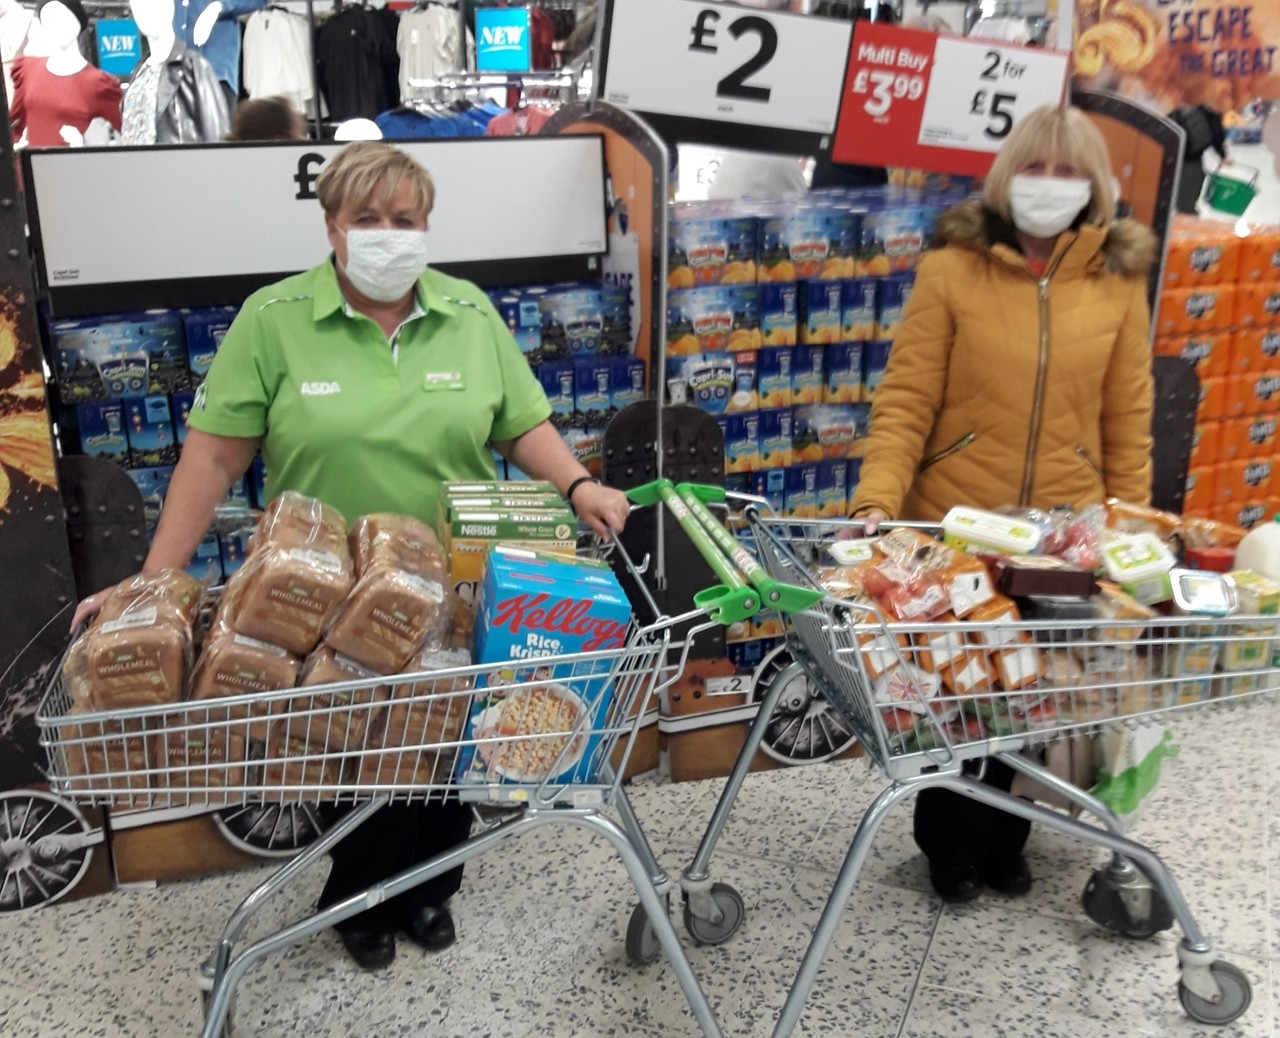 Donations to support our community   Asda Gosforth